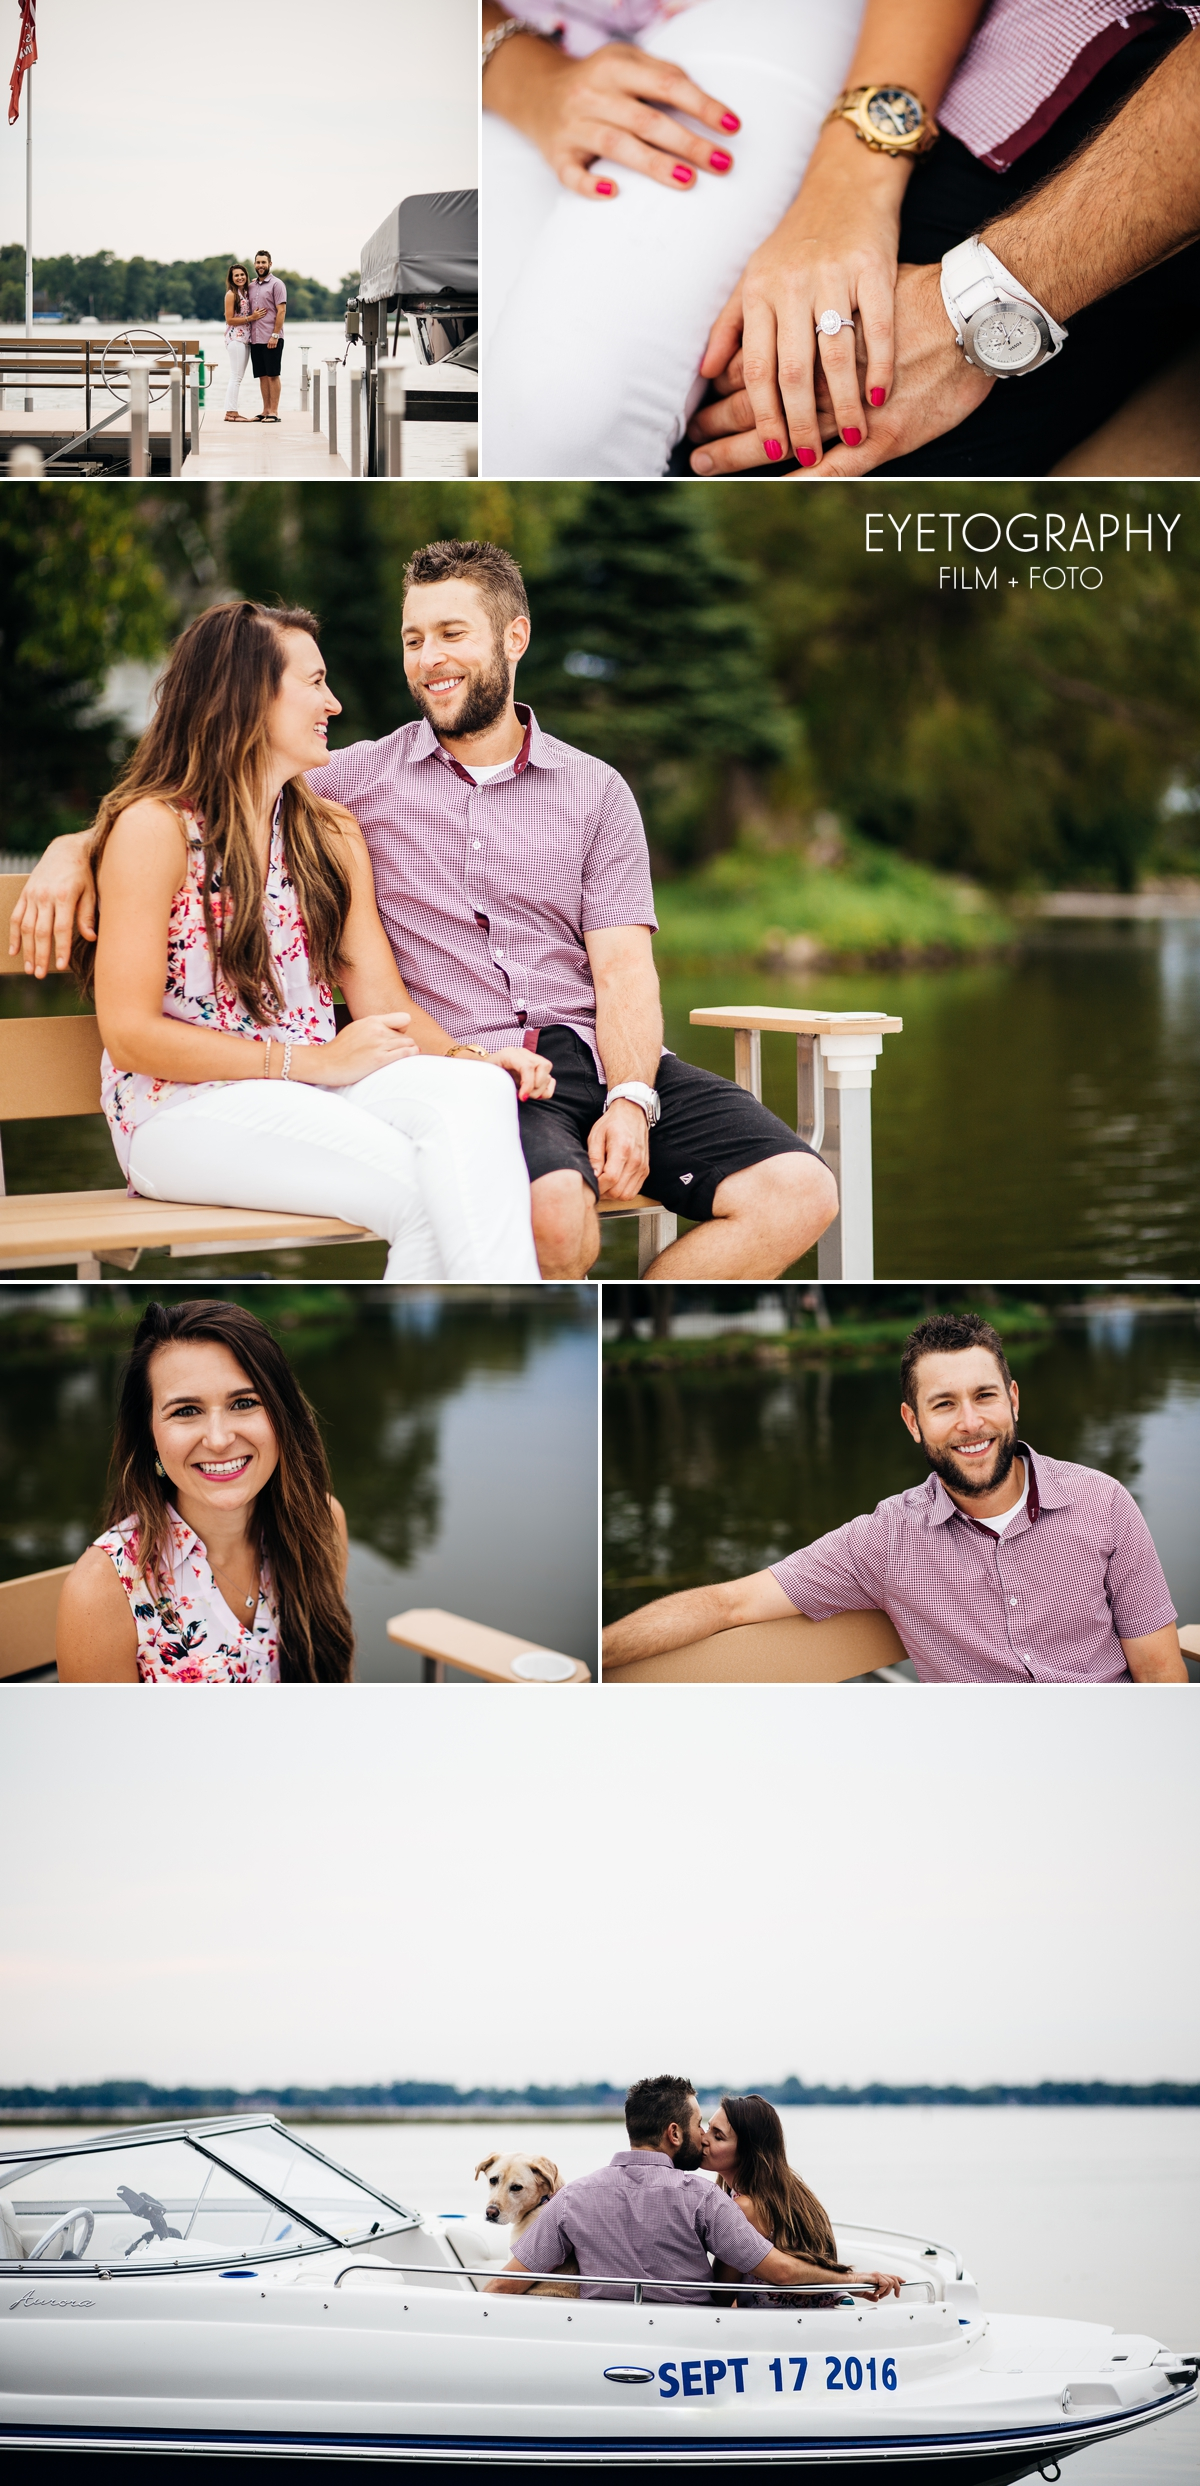 Engagement Session on a Lake | Andrea + Chris | Eyetography Film + Foto Minneapolis, MN 2